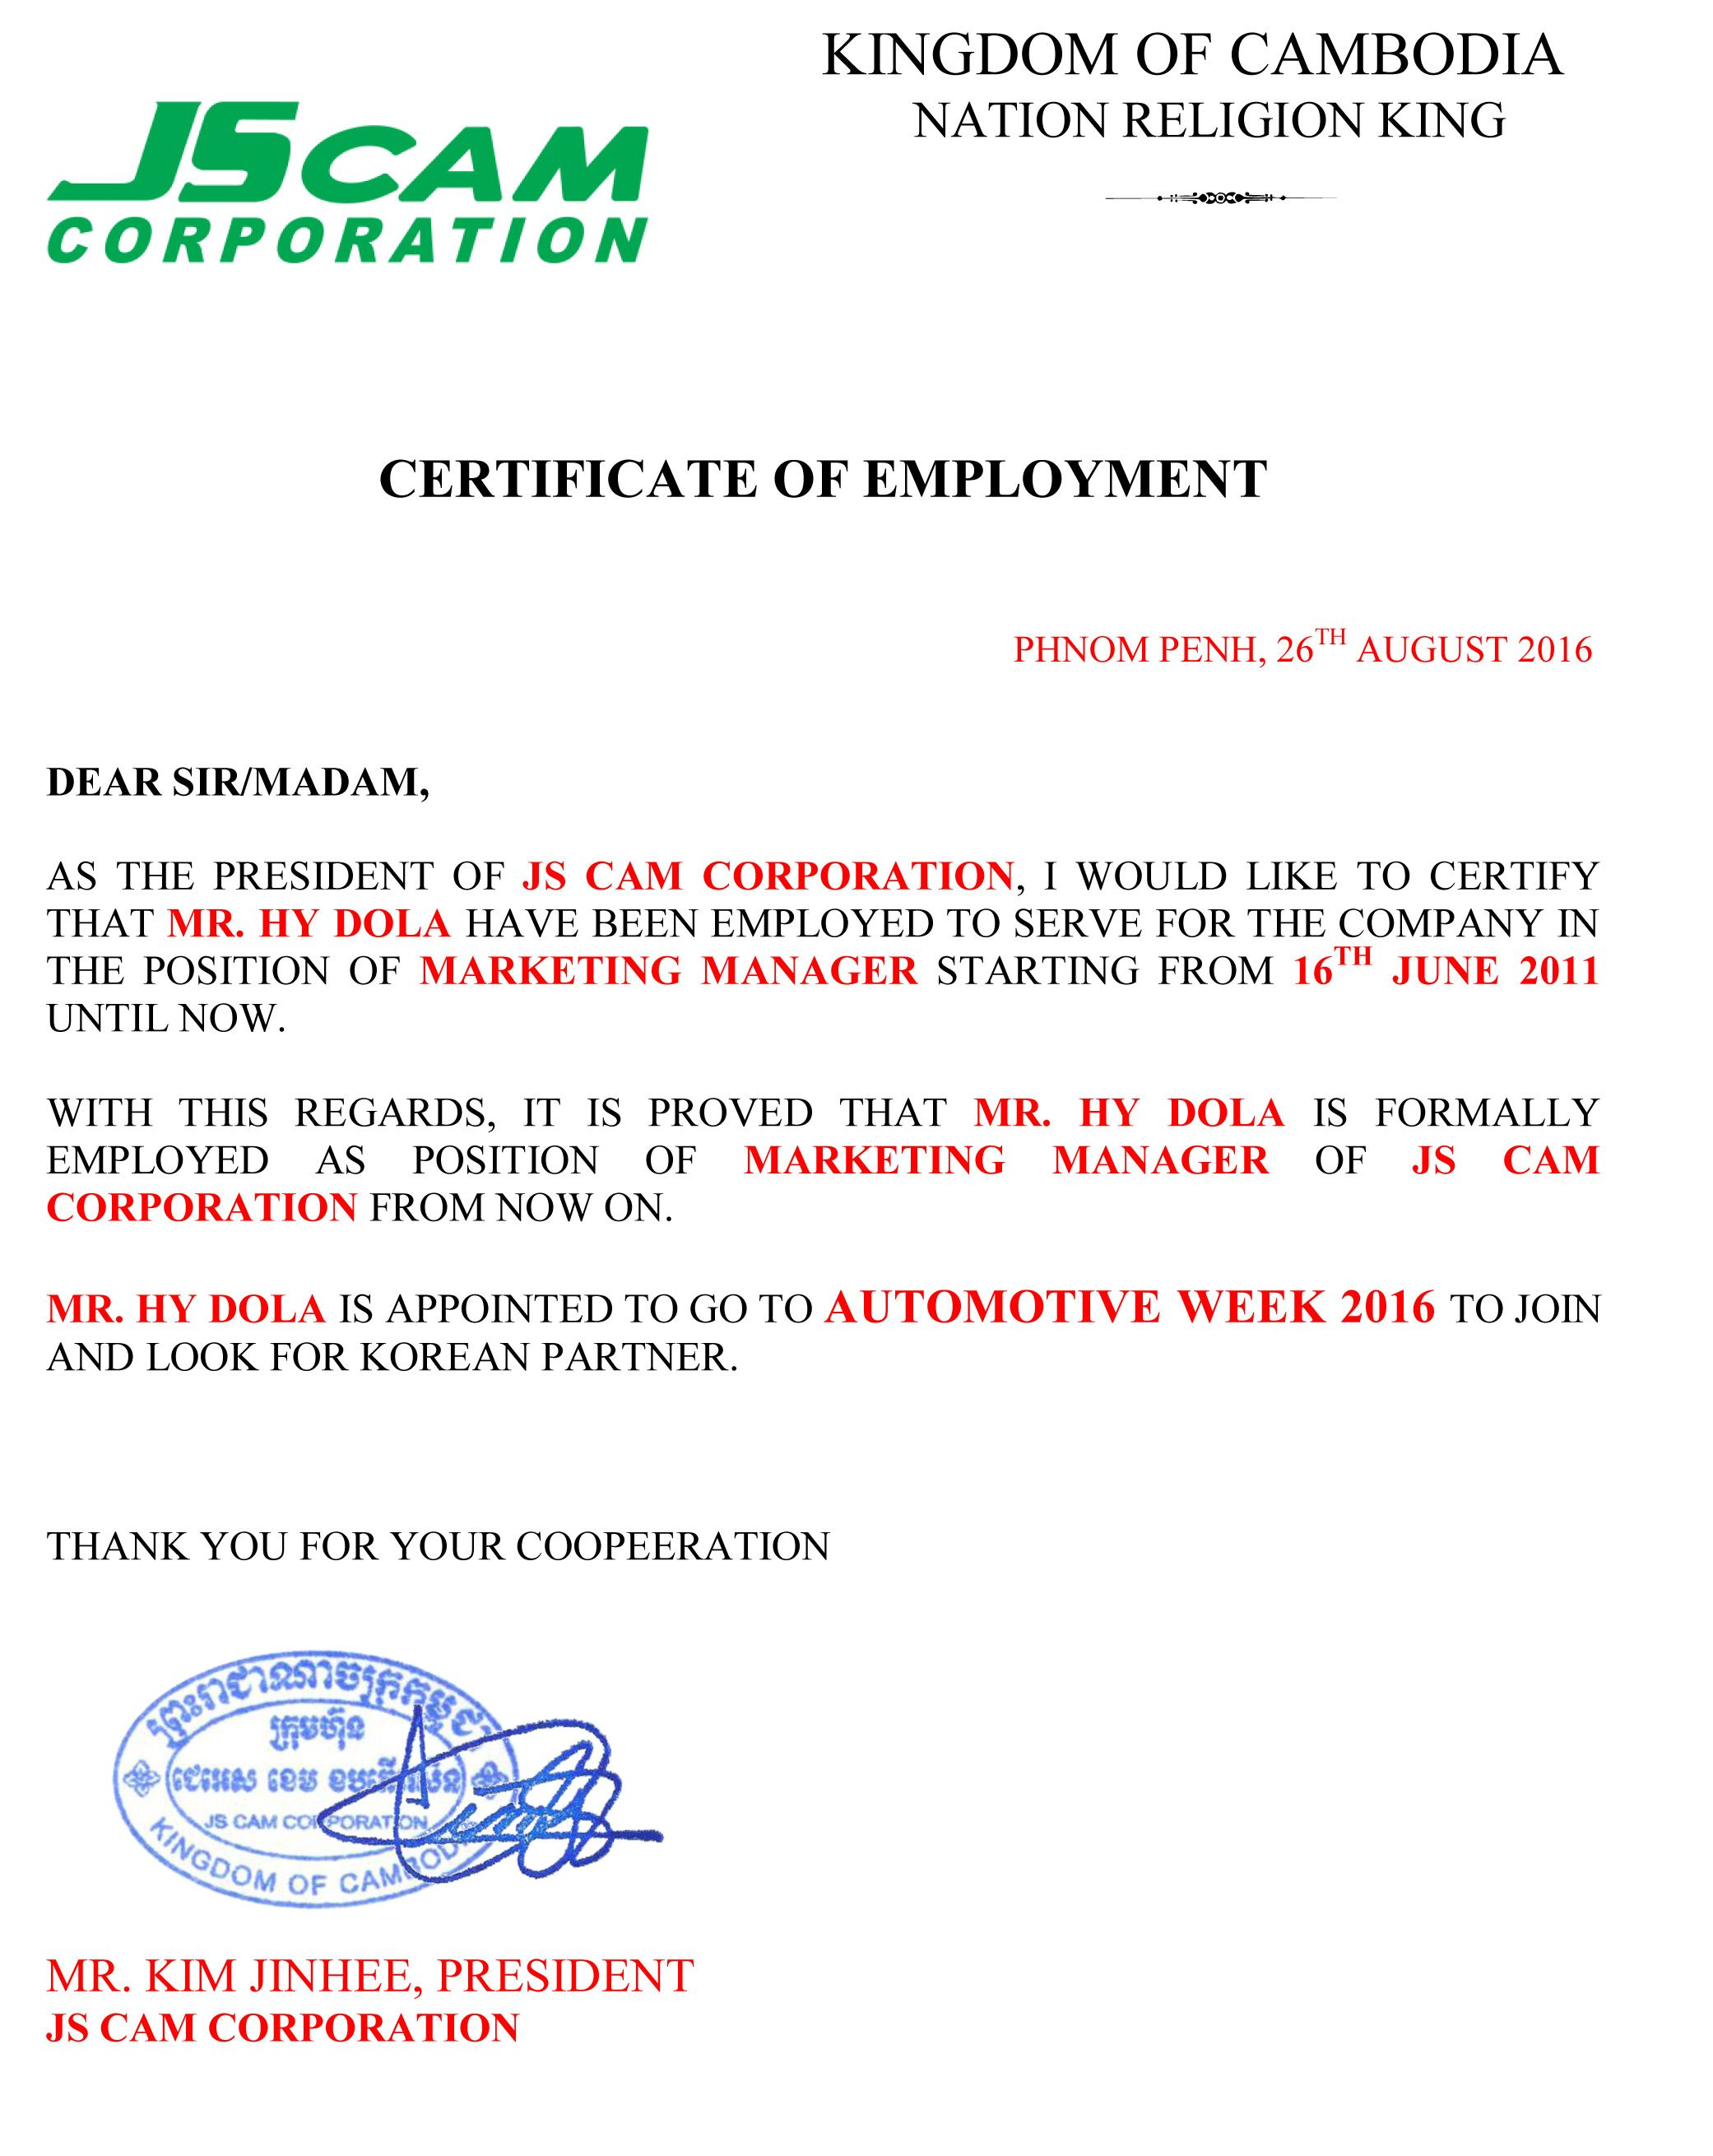 Doc585530 employee working certificate format employee letter for certificate employment visa application cover employee working certificate format yadclub Choice Image